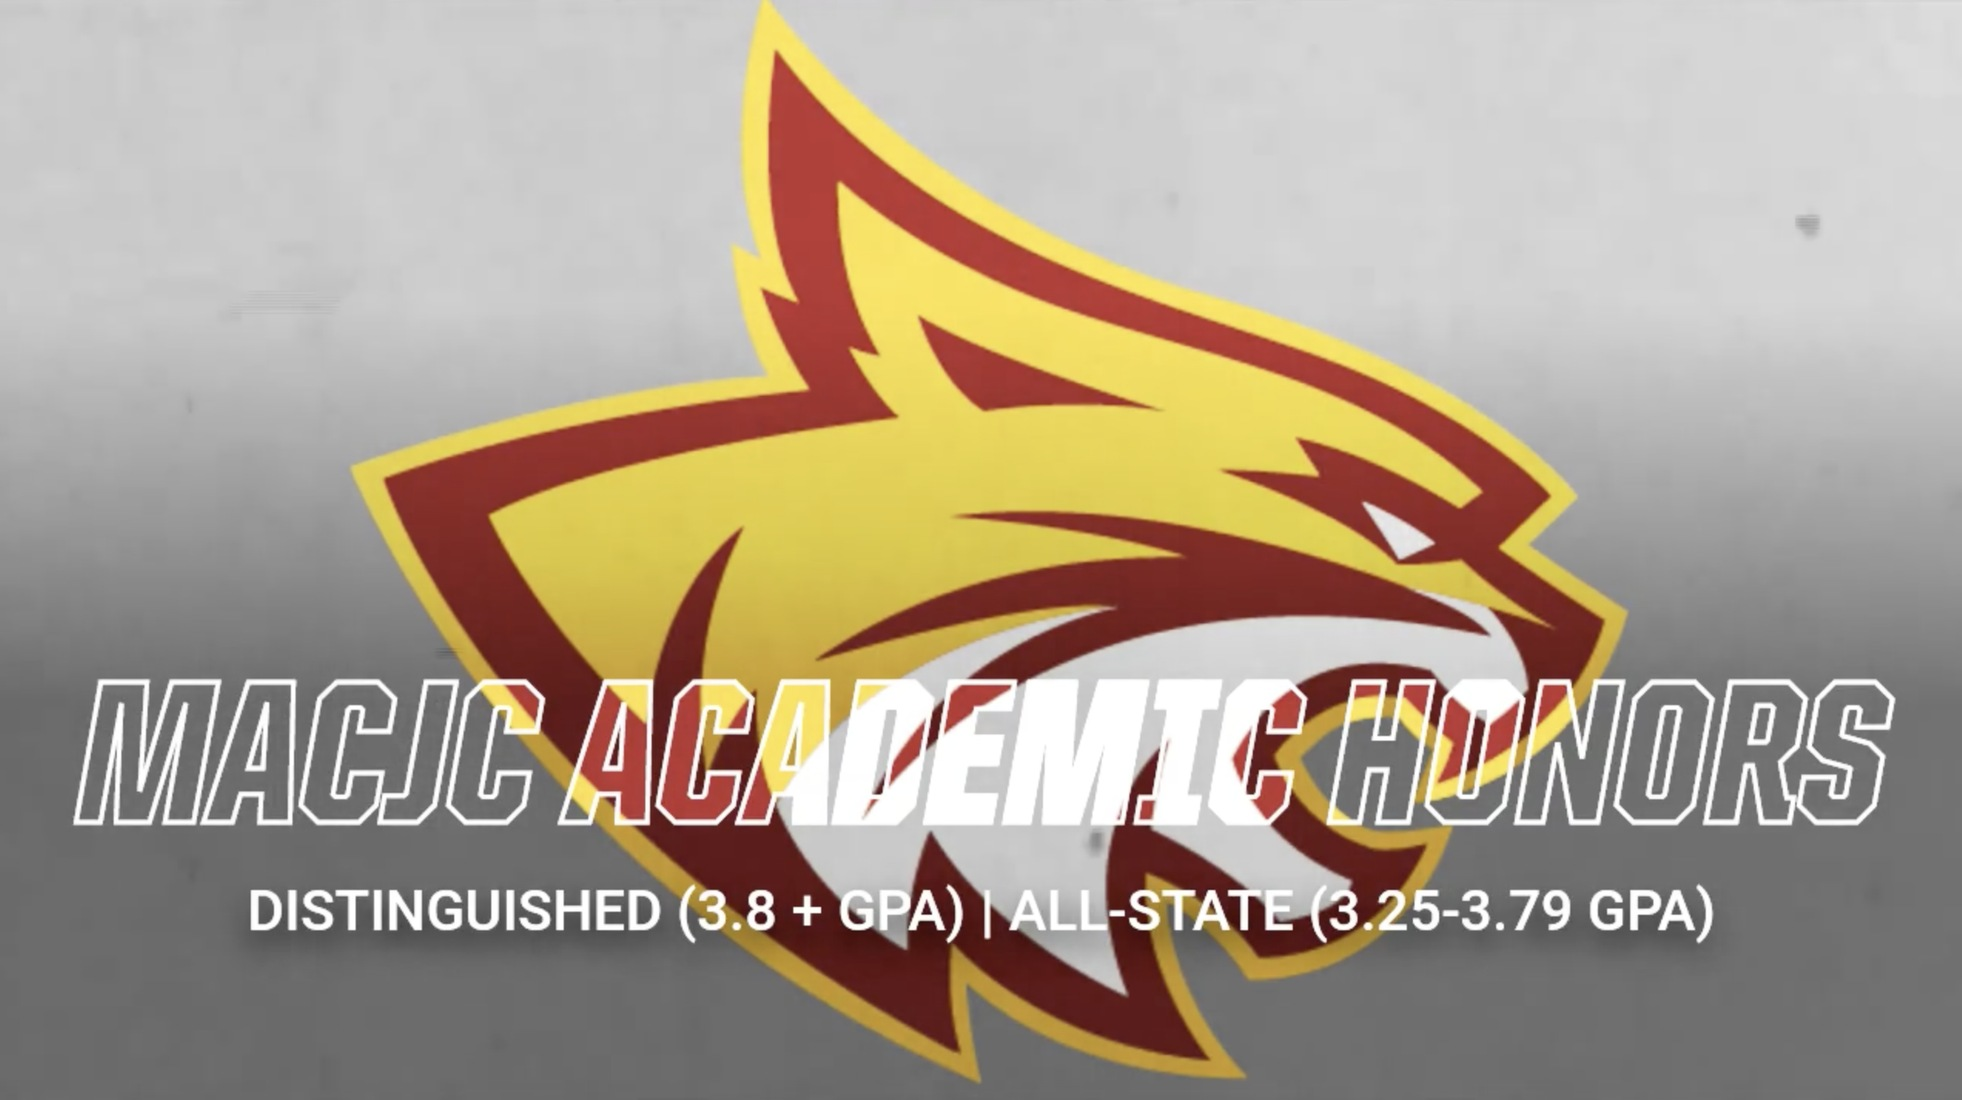 57 PRCC Wildcats earn Academic All-State honors